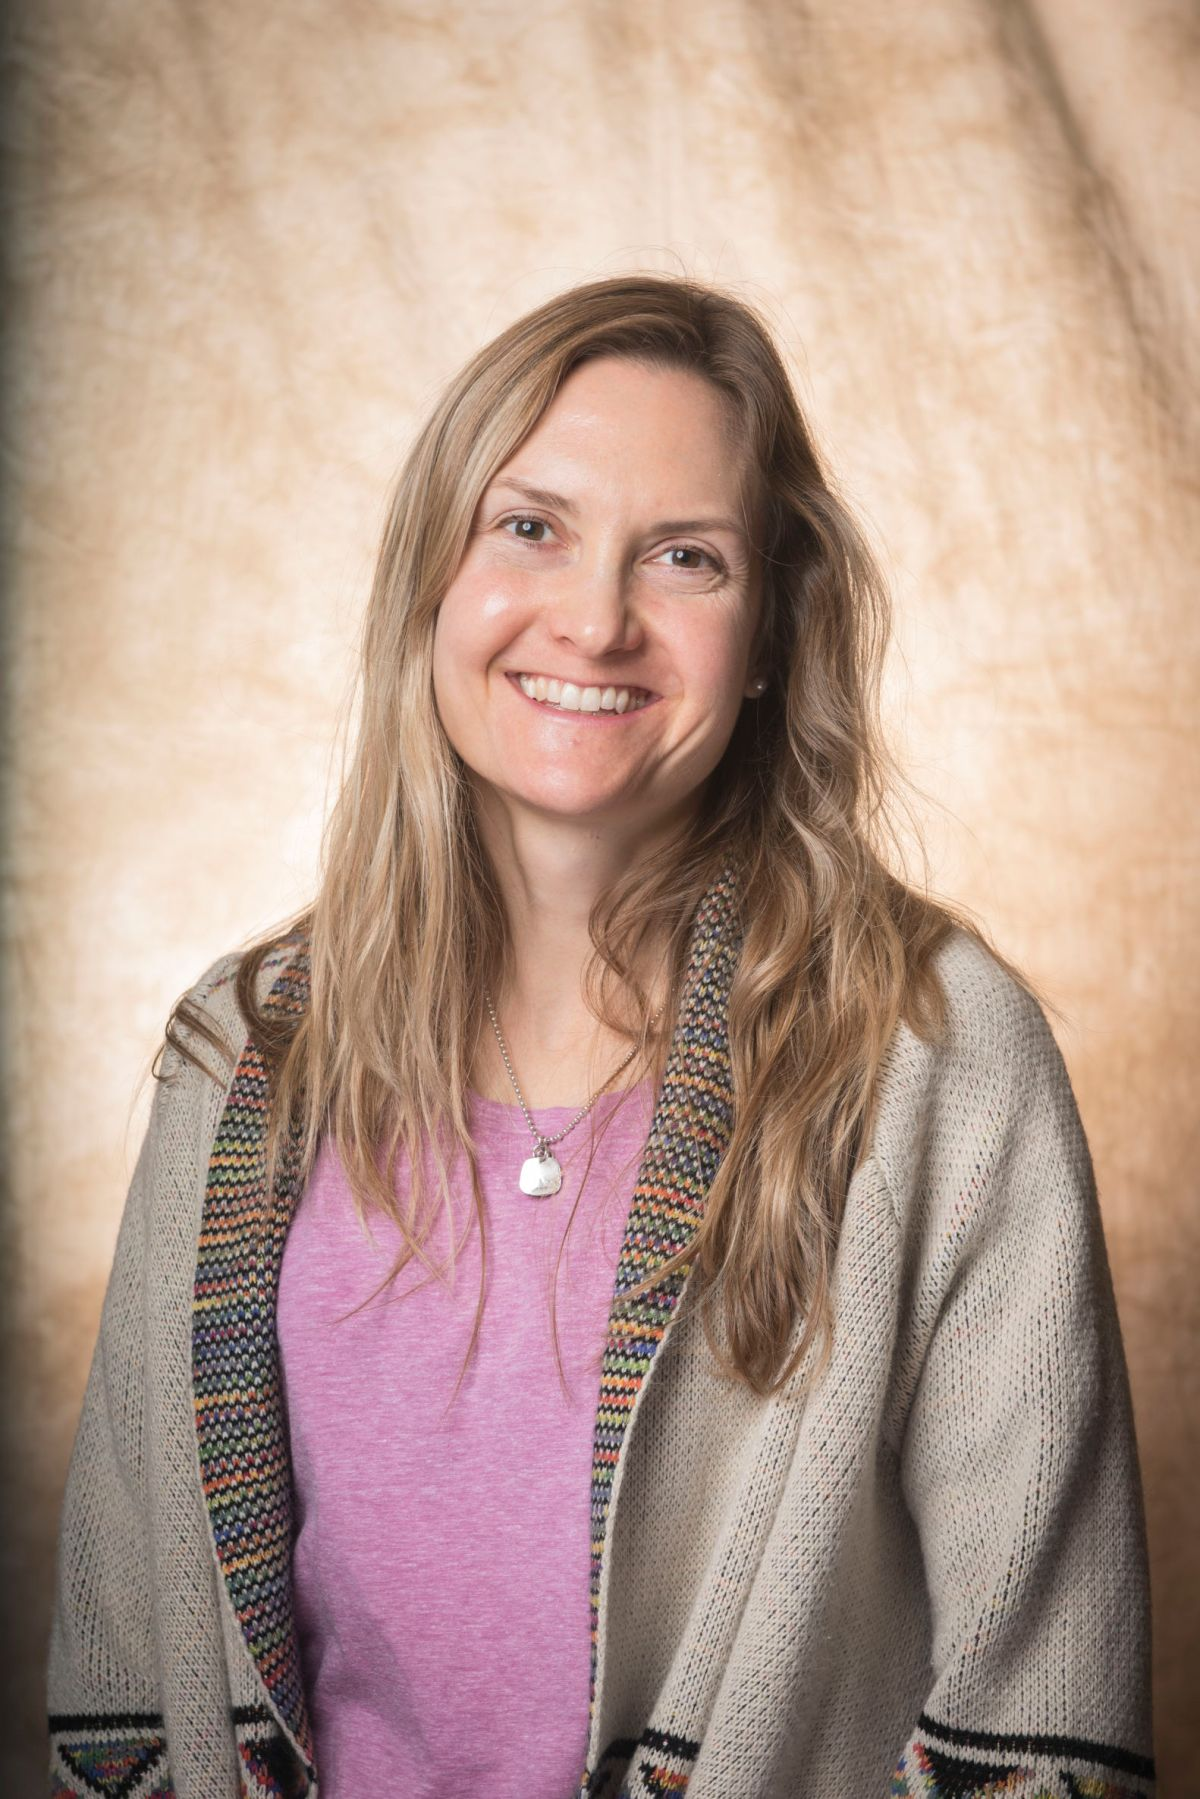 Angie Treadwell, the Supplemental Nutrition Assistance Education Program (SNAP-Ed) Coordinator for Umatilla and Morrow counties, is based at the OSU Hermiston Agricultural Research and Extension Center